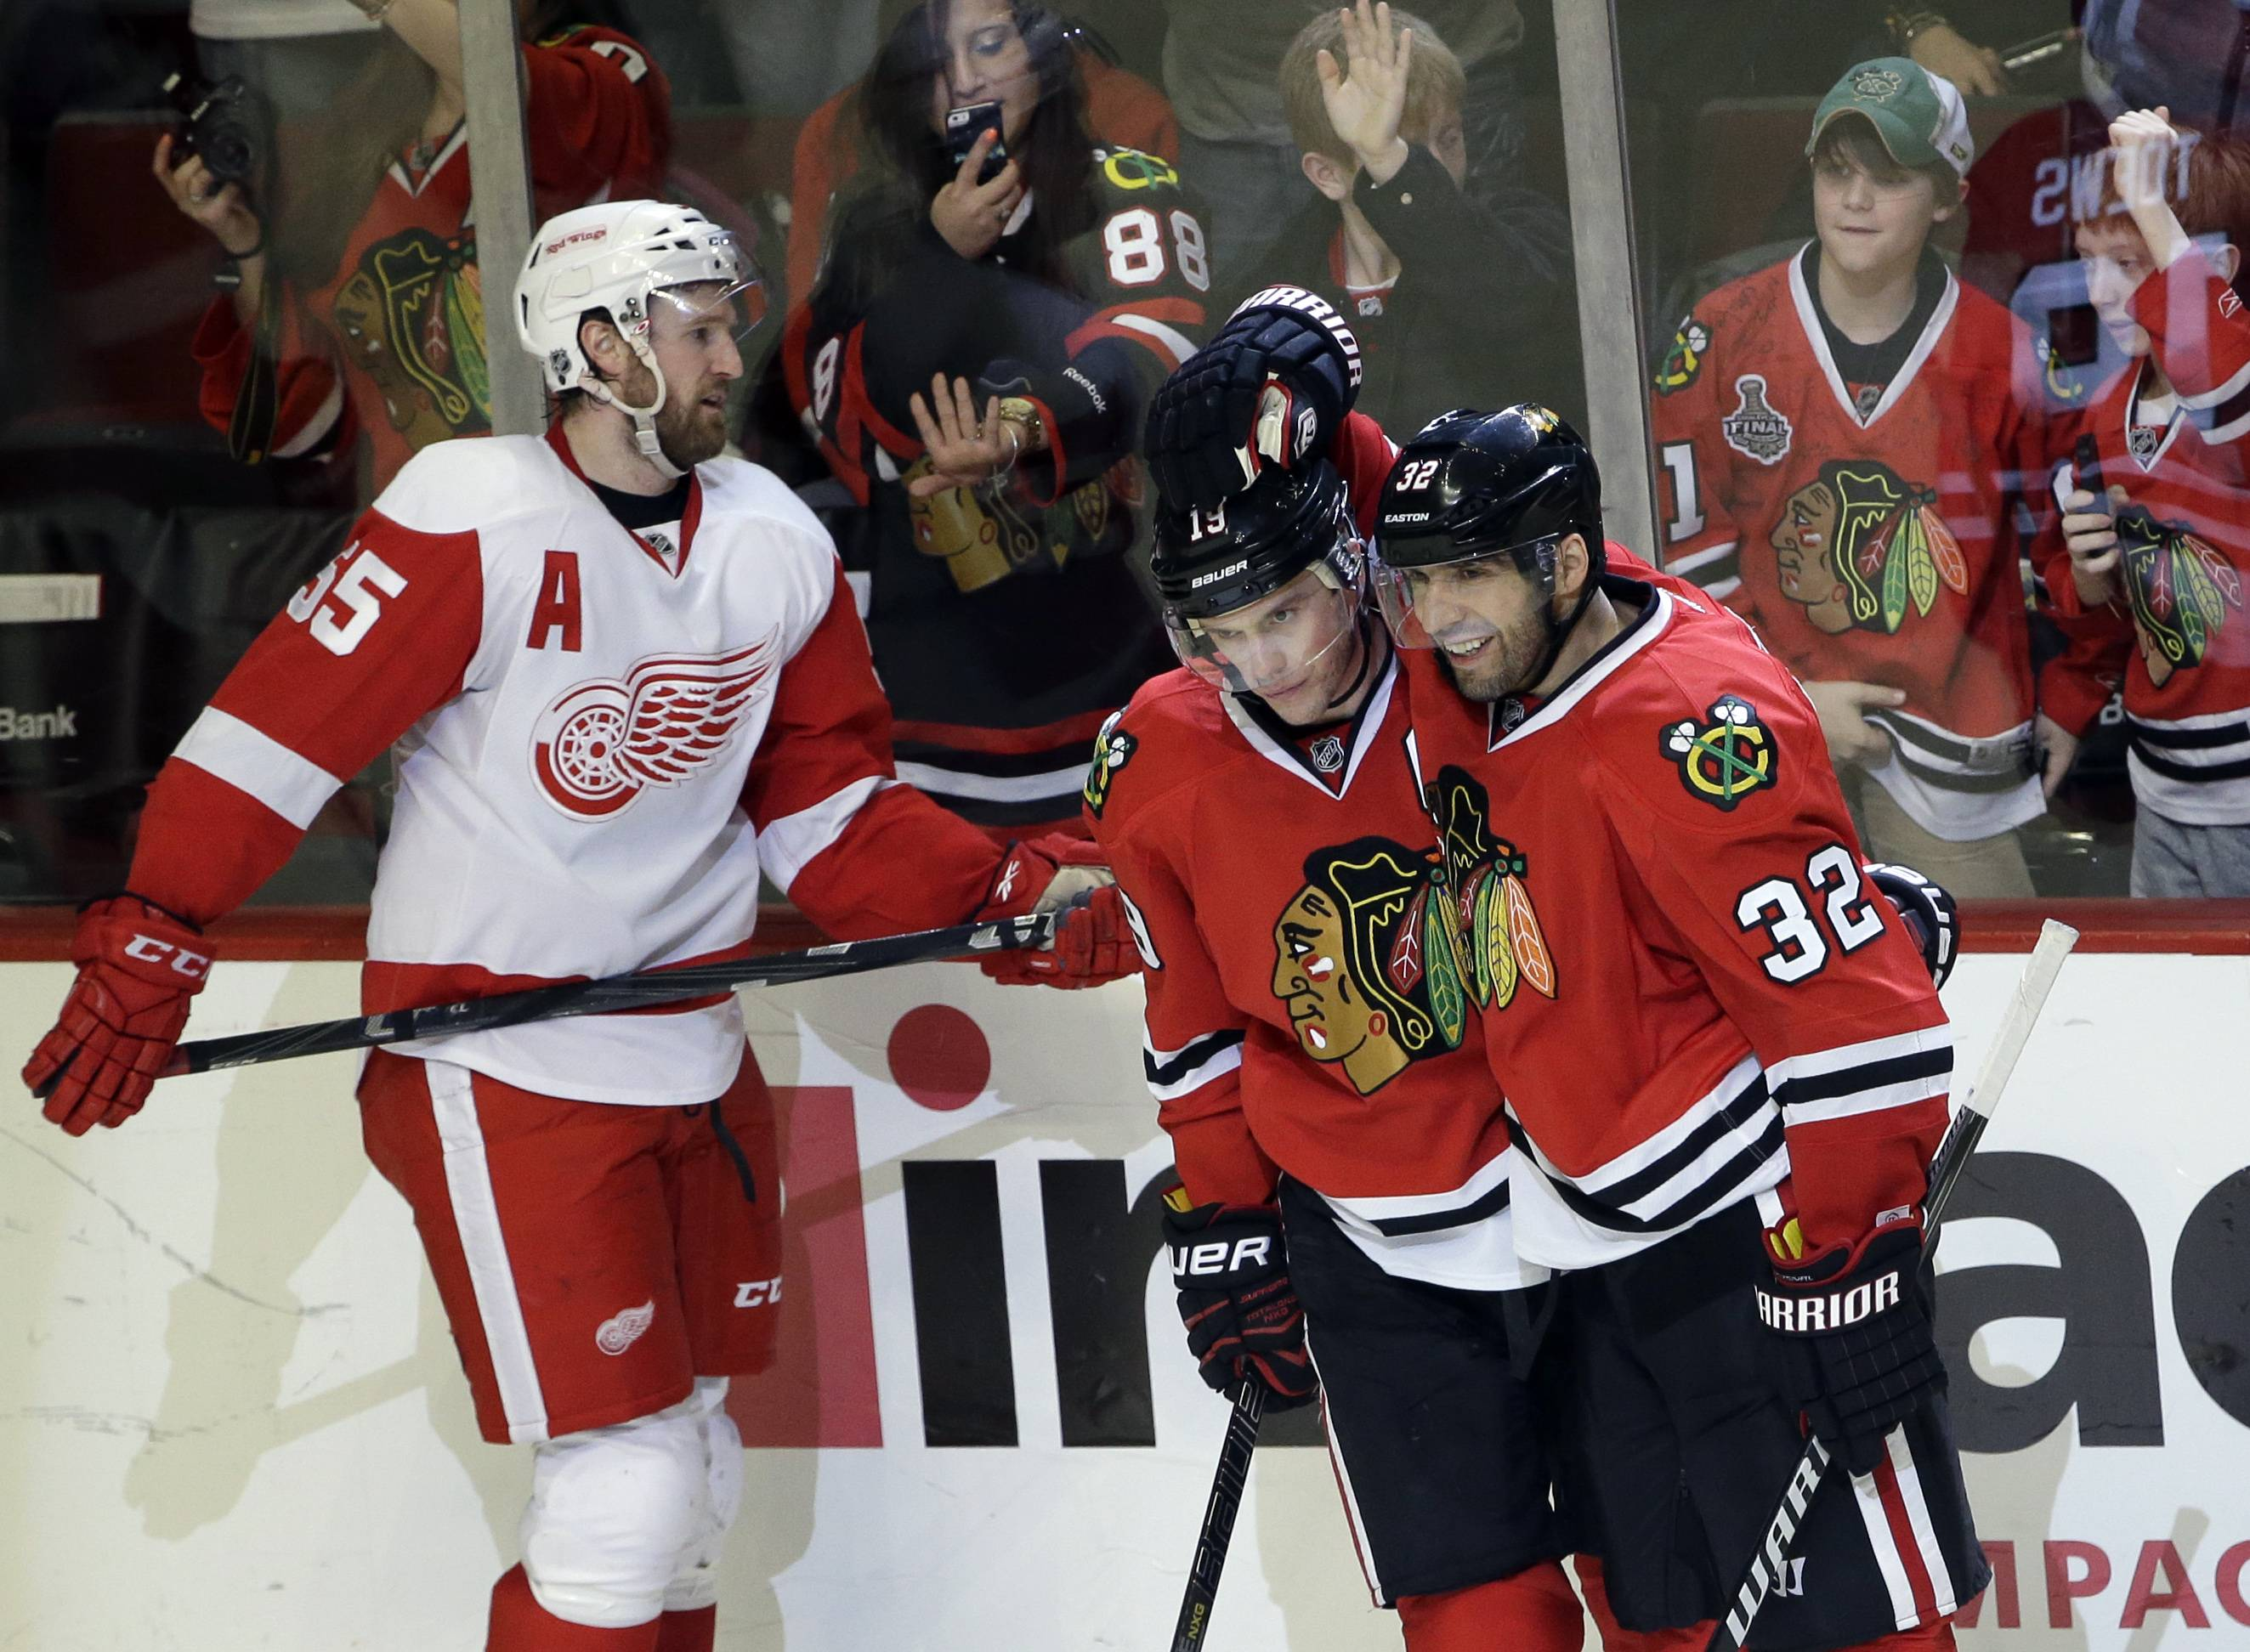 Blackhawks center Jonathan Toews (19) celebrates with Michal Rozsival (32) after scoring his goal as Detroit Red Wings' Niklas Kronwall (55) reacts during the third period of an NHL hockey game in Chicago, Sunday, March 16, 2014. The Blackhawks won 4-1.